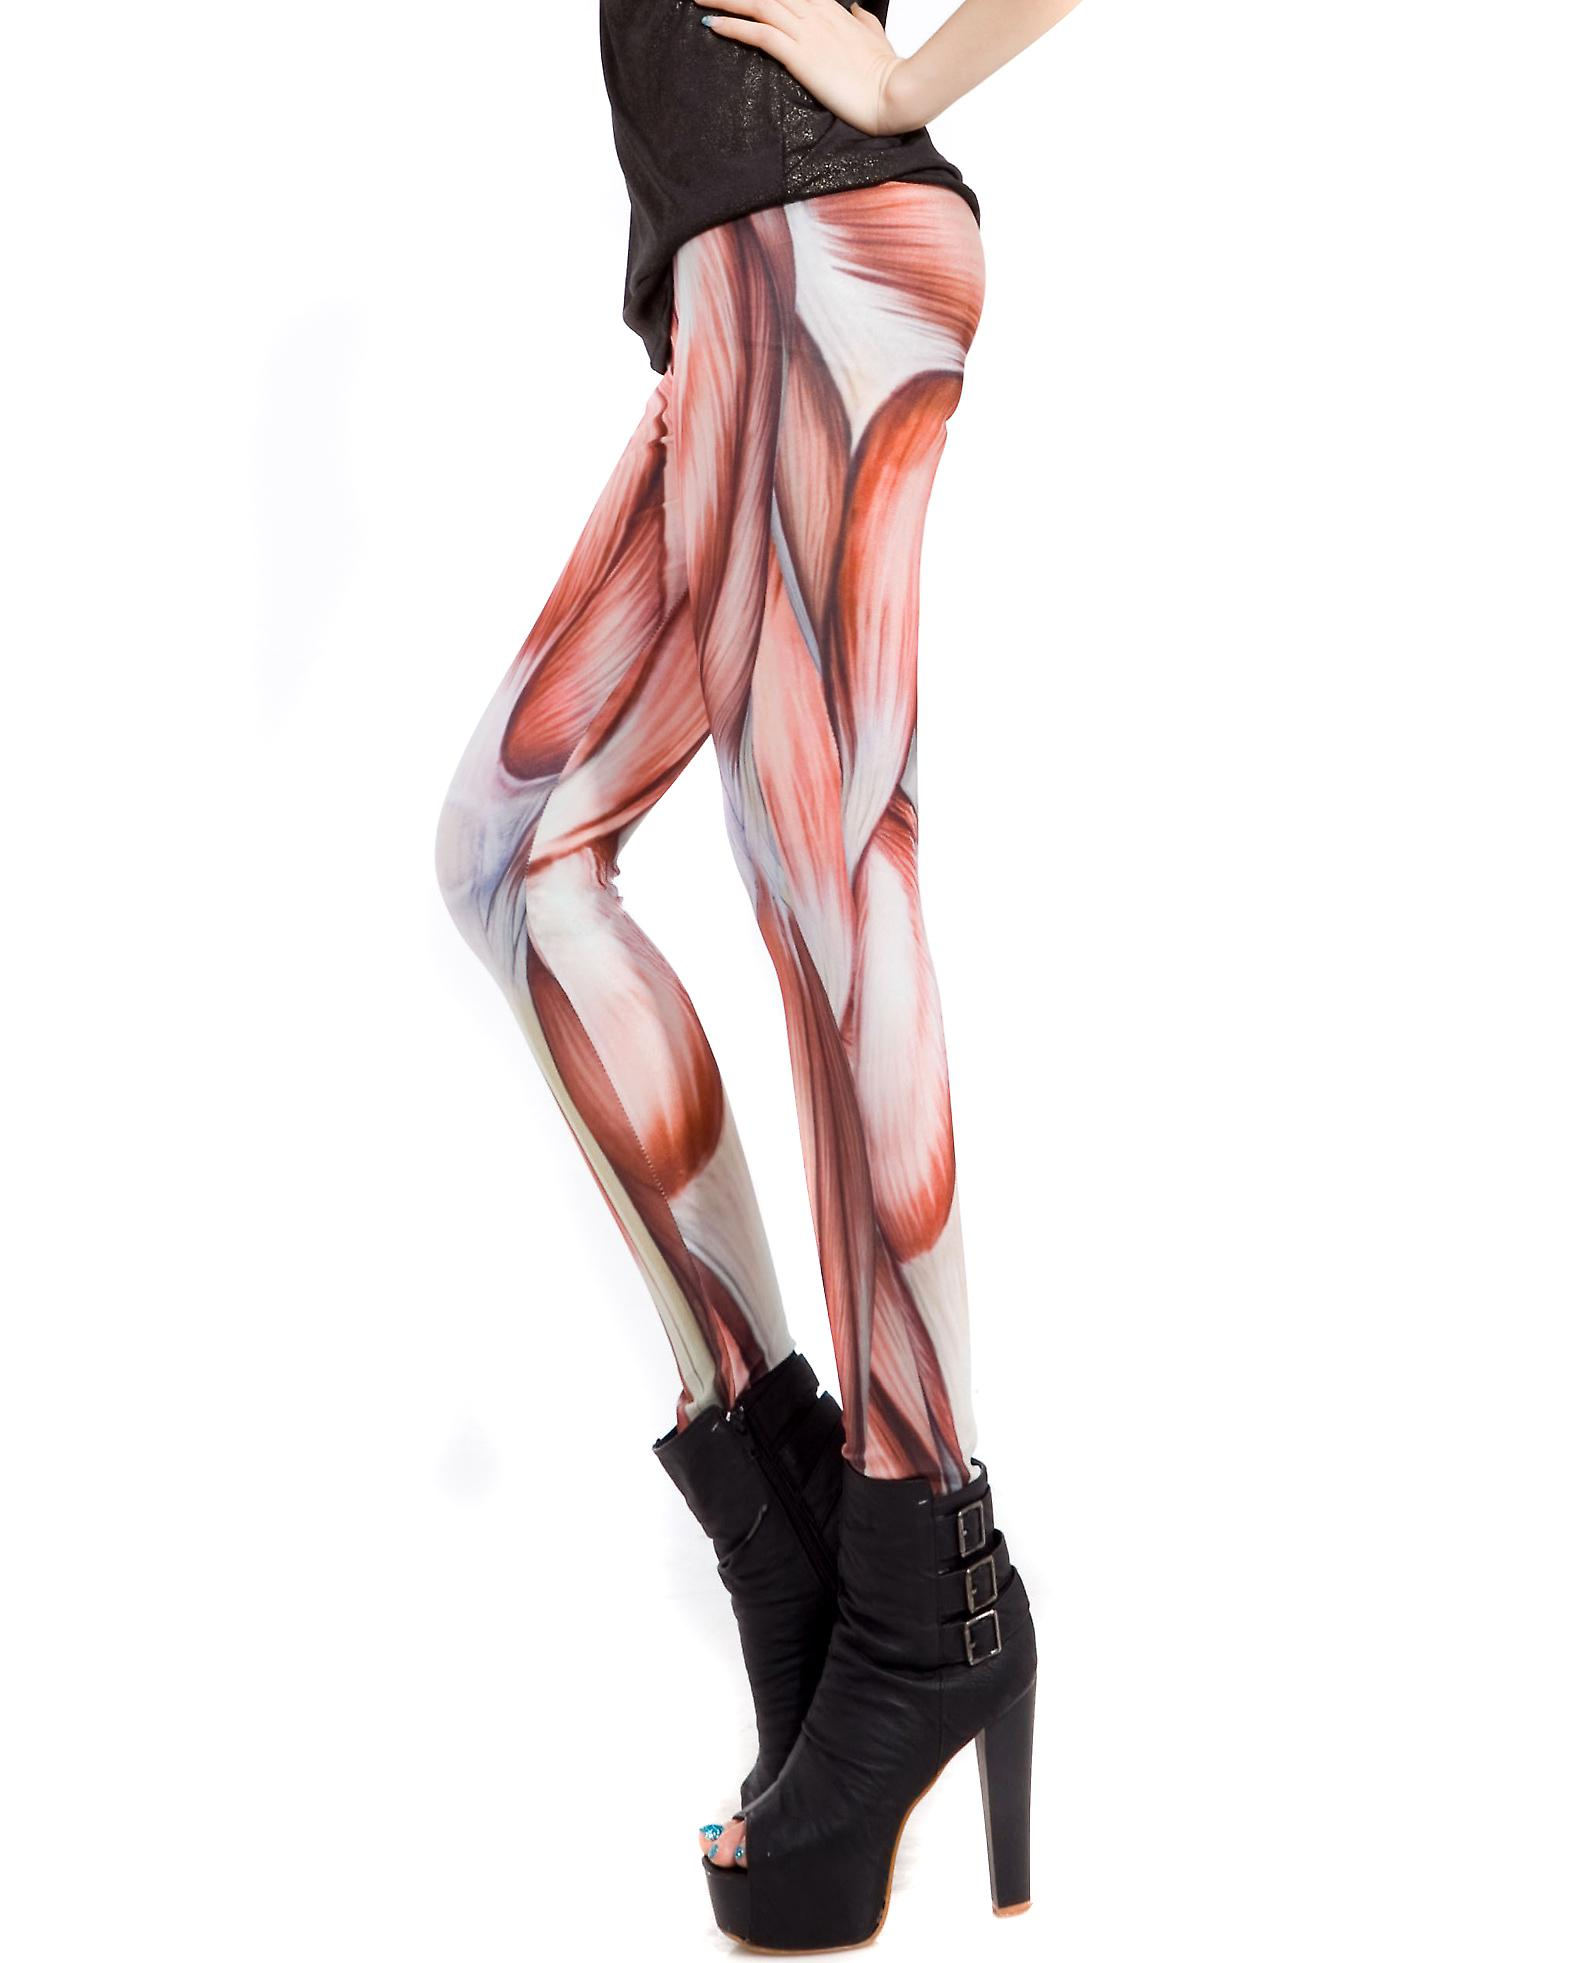 Waooh - Mode - Leggings fantaisie long - Muscles